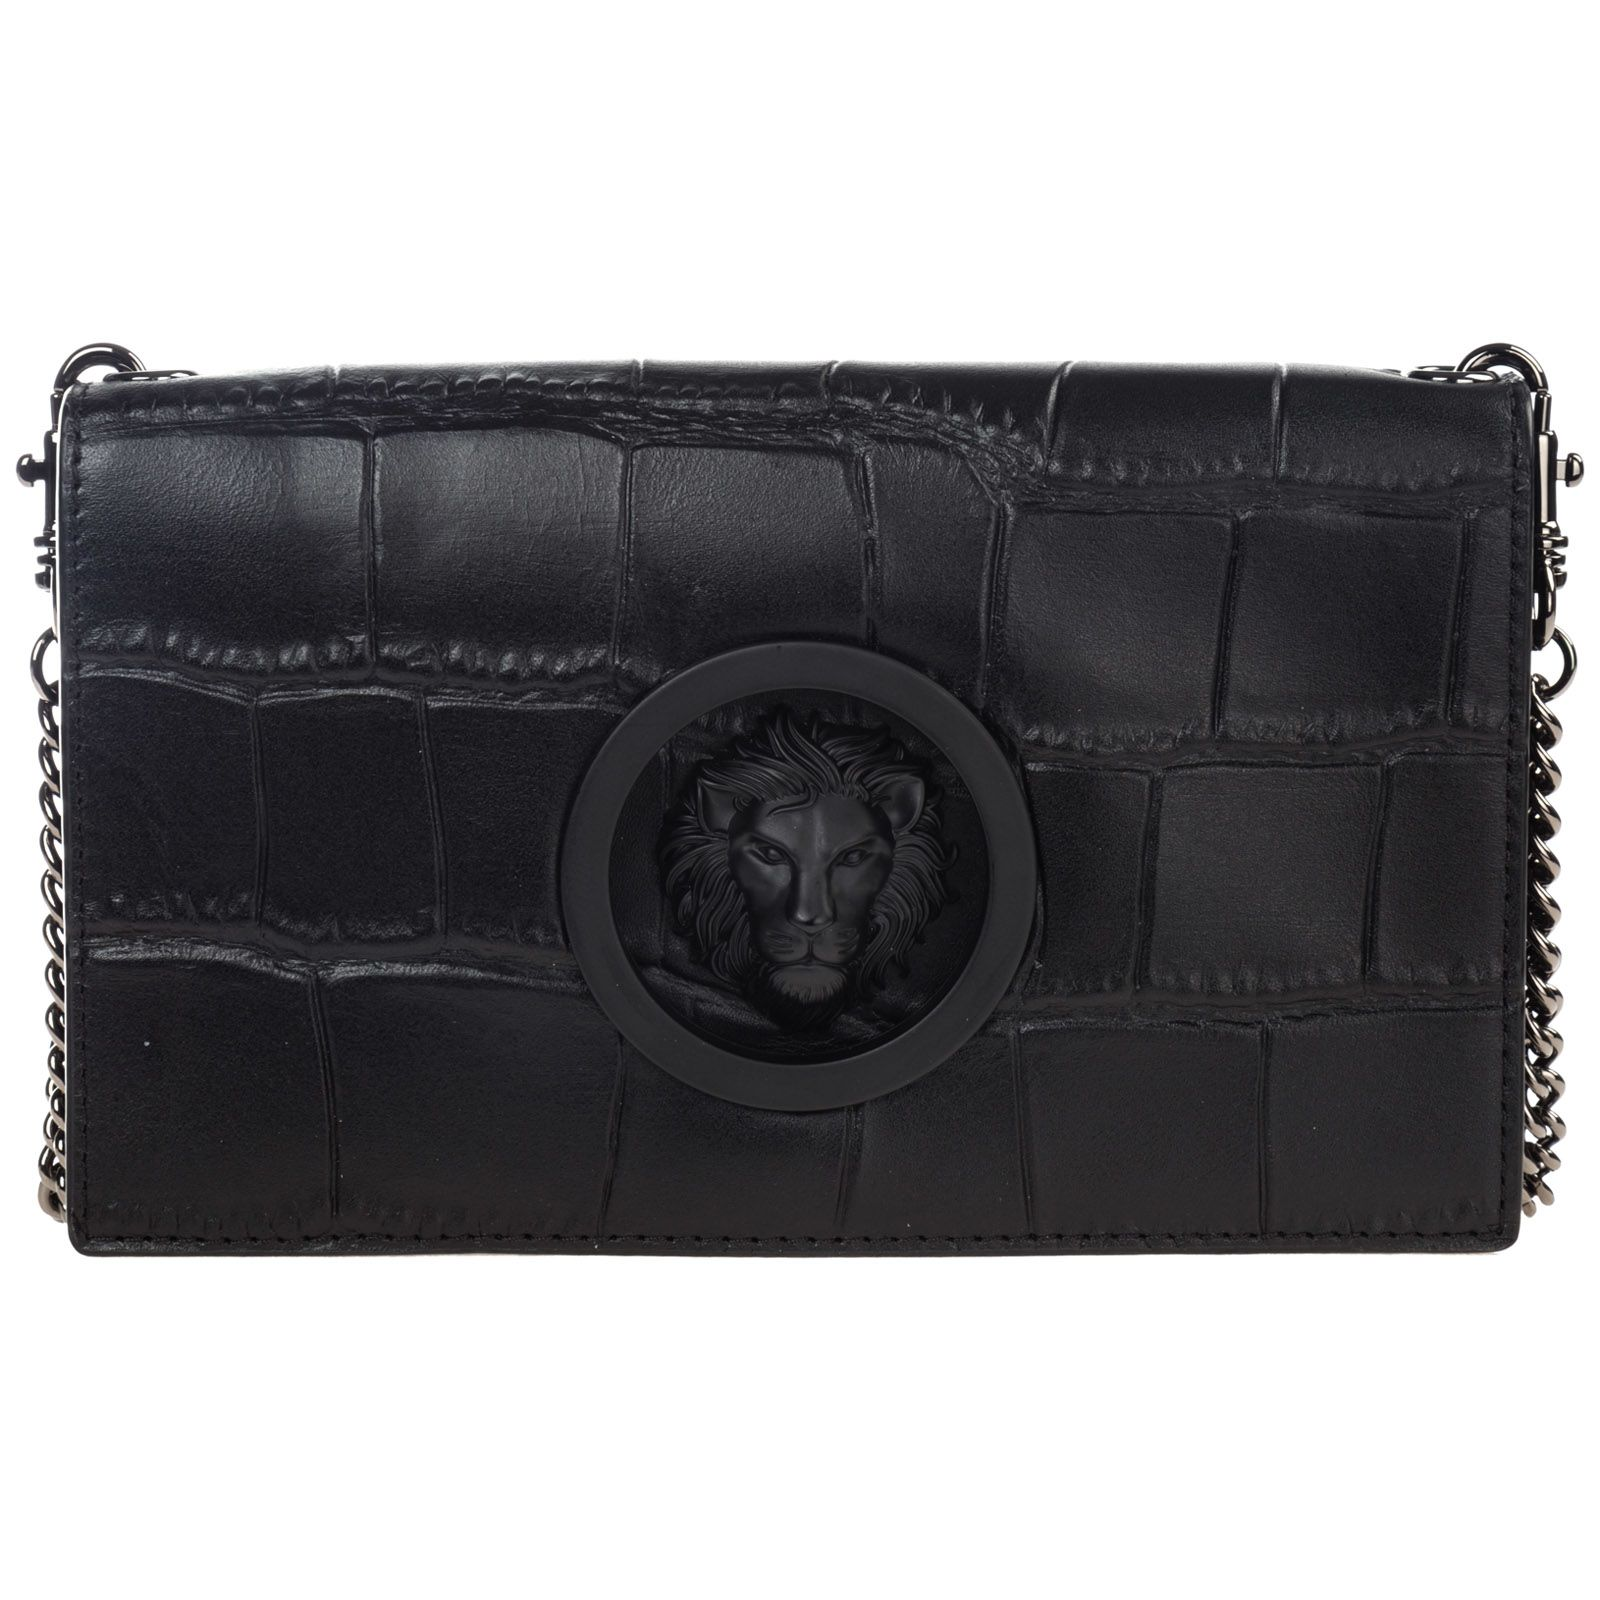 77a4dde557 Versus Versace Leather Cross-body Messenger Shoulder Bag Lion Head - Black  ...